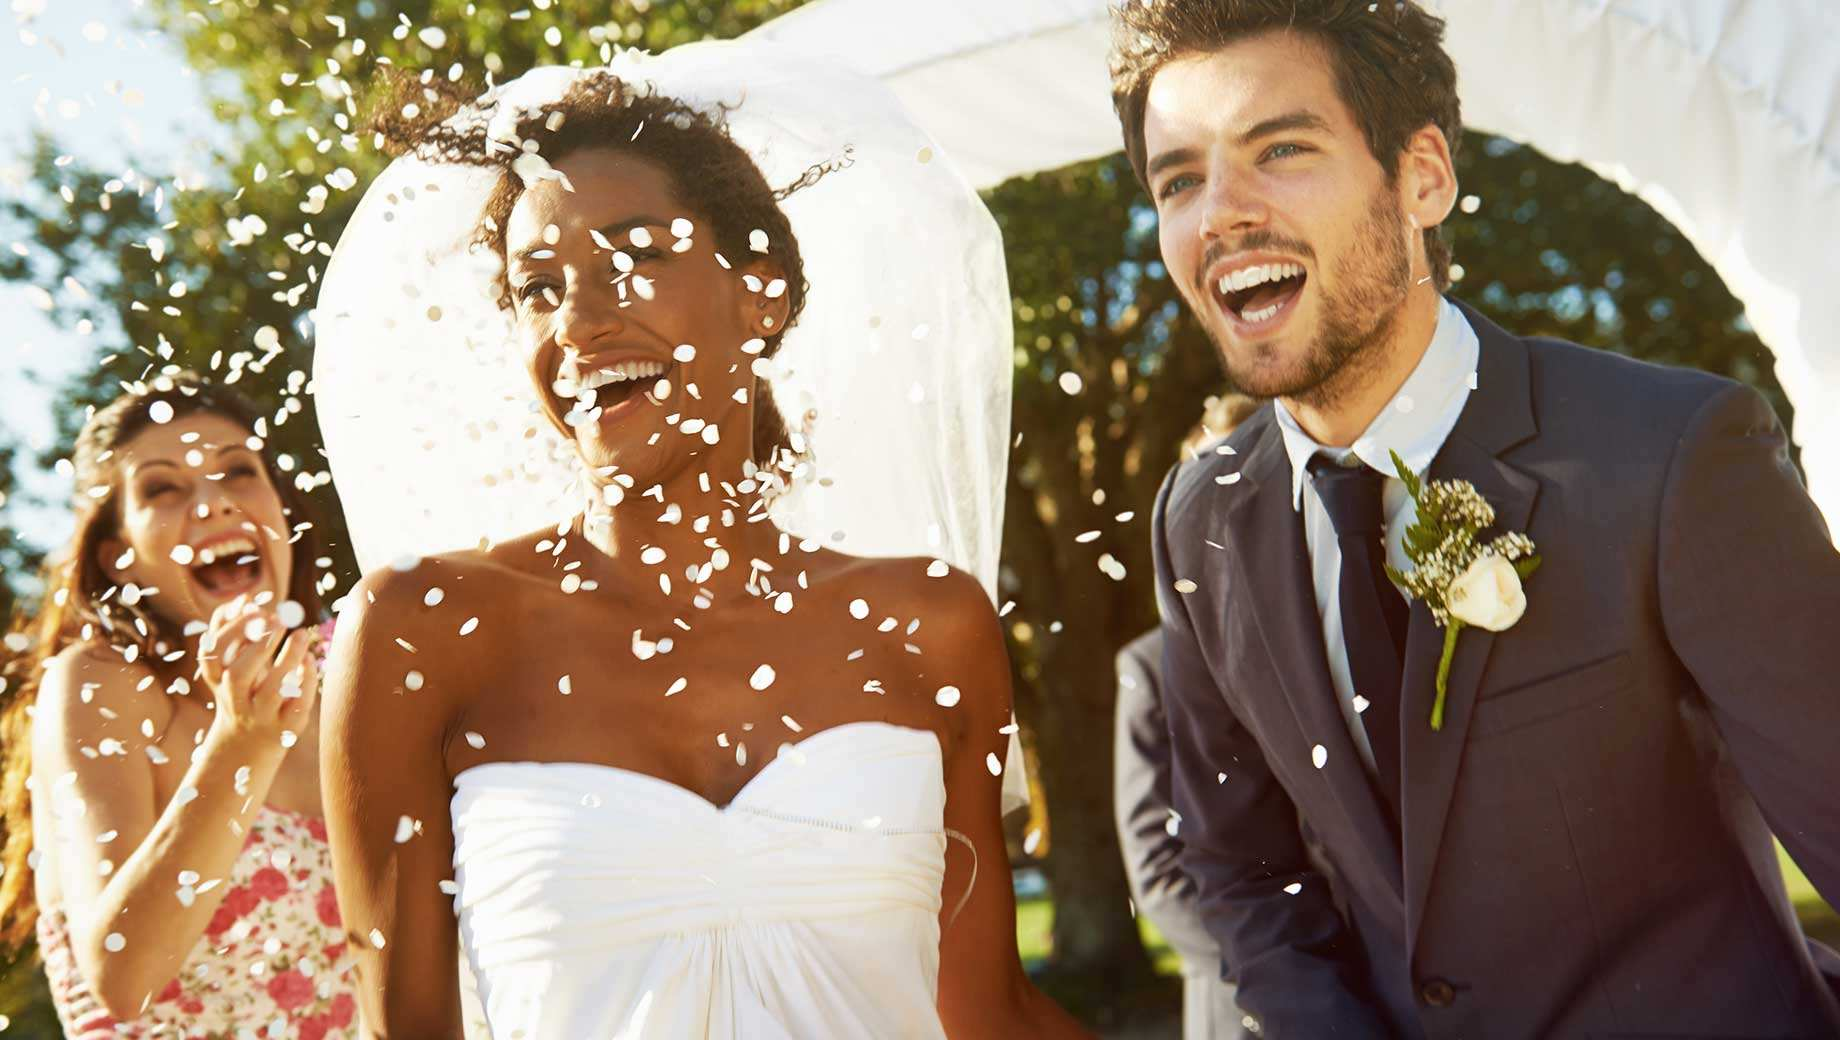 94% of U.S. Adults Approve of Marriage Between Black People and White People